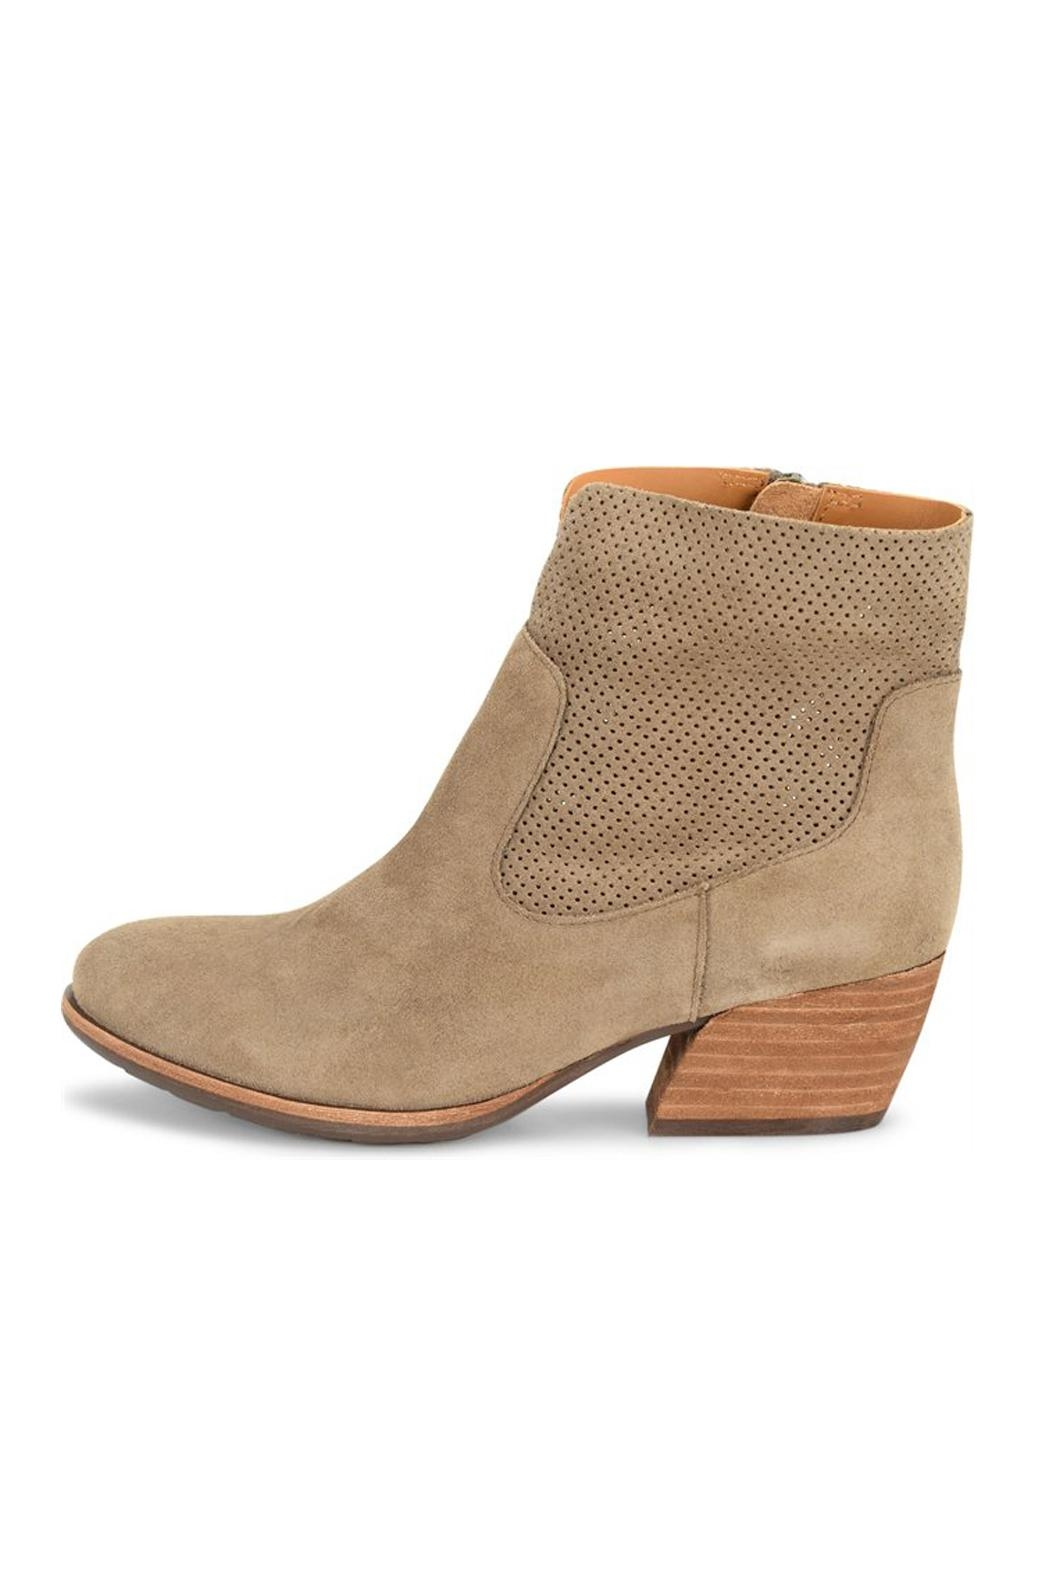 Kork-Ease Sherrill Suede Booties - Main Image